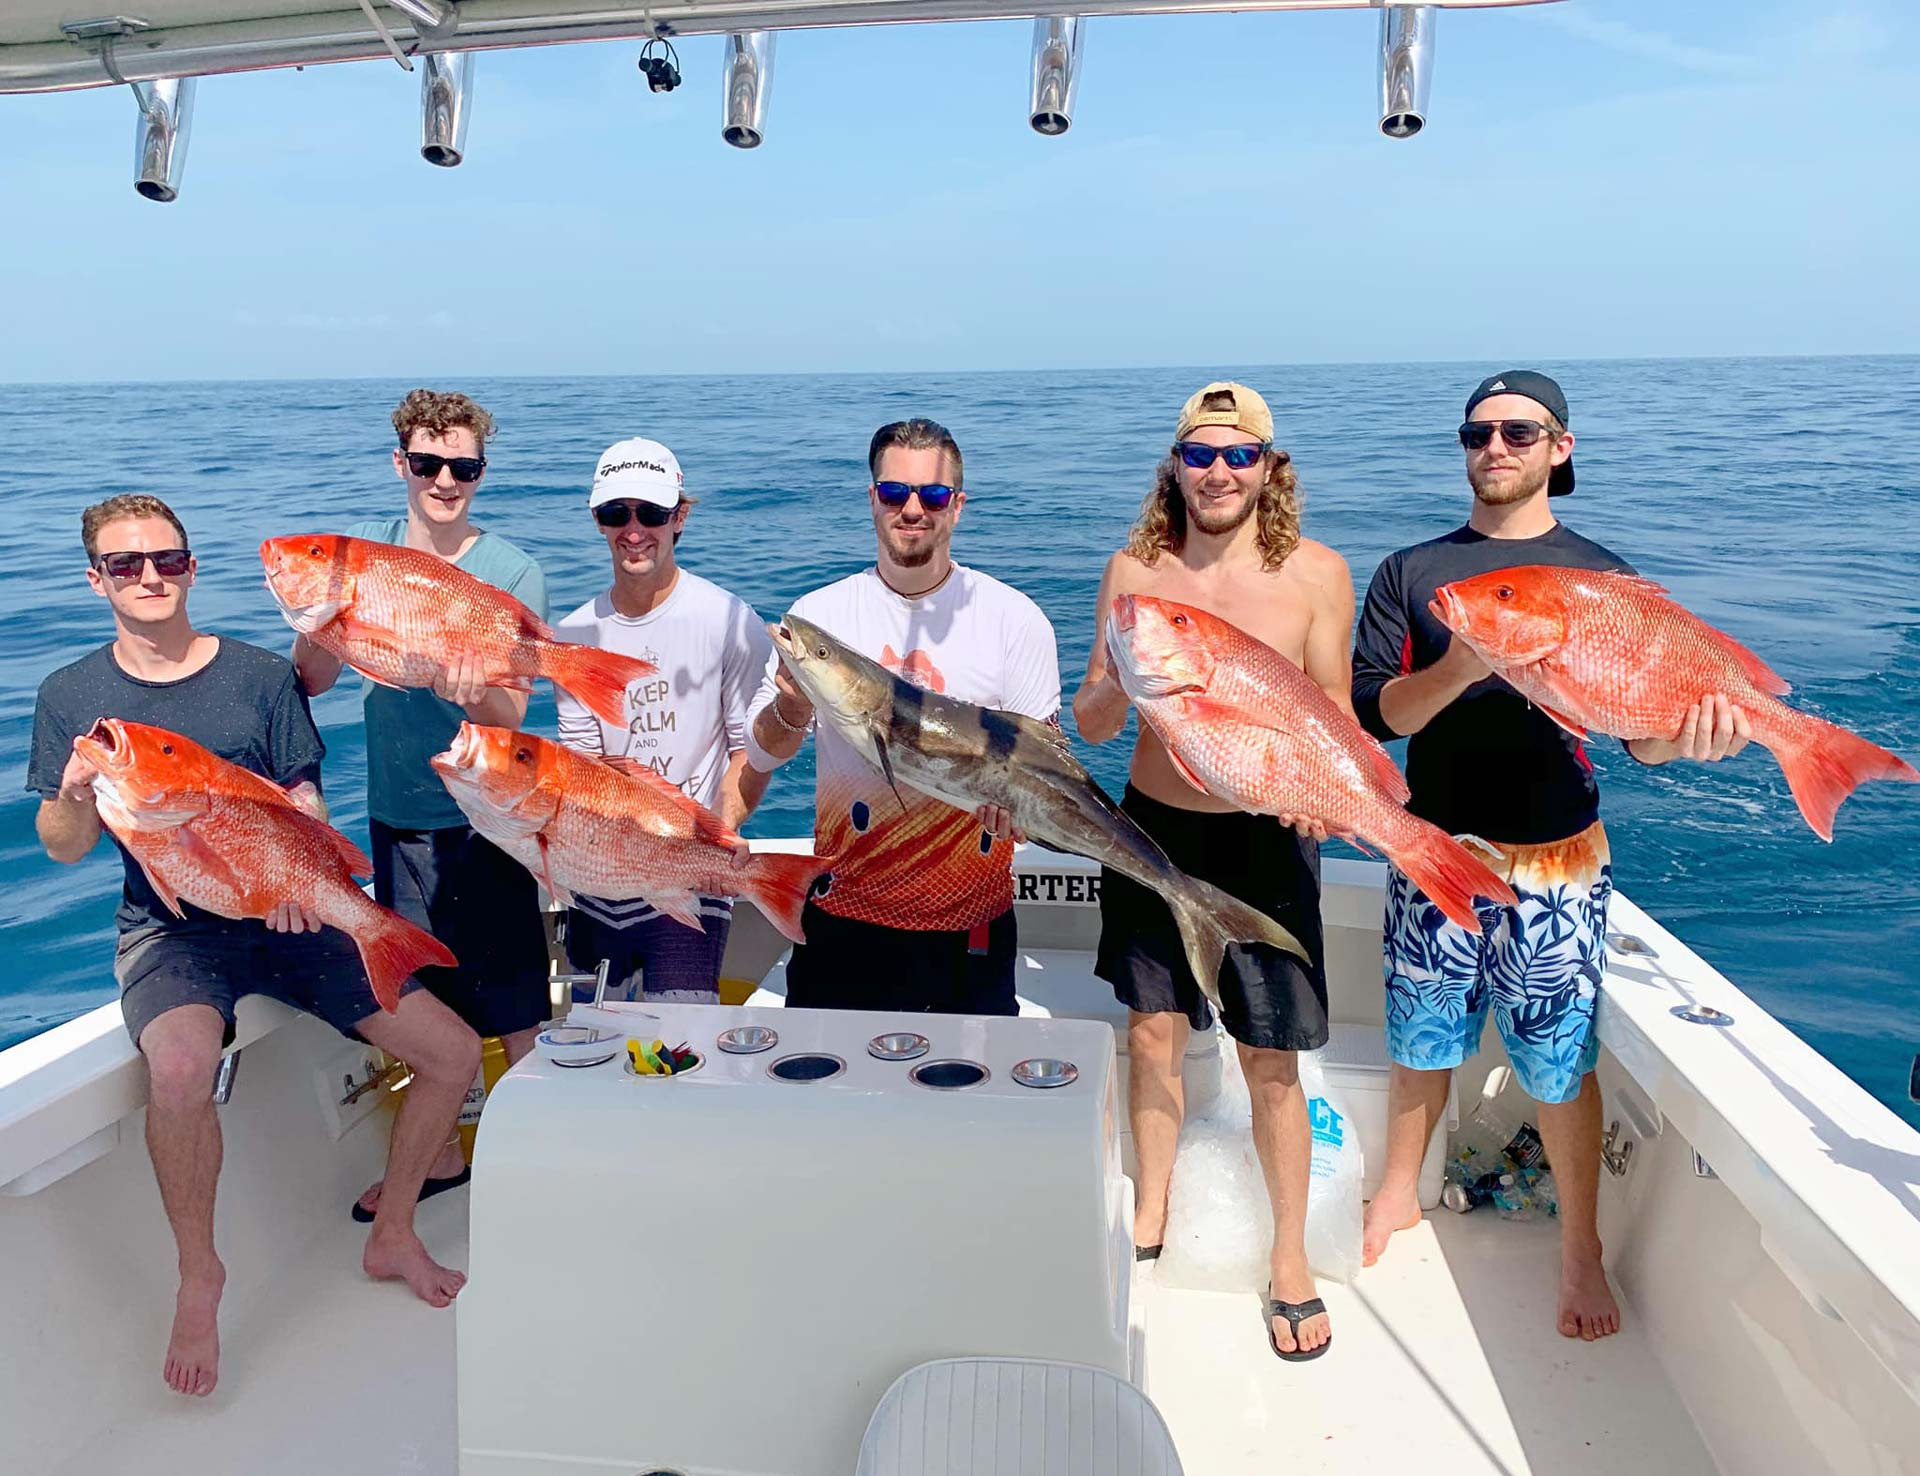 A group in Daytona Beach caught redfish on Deep Sea Fishing Charter